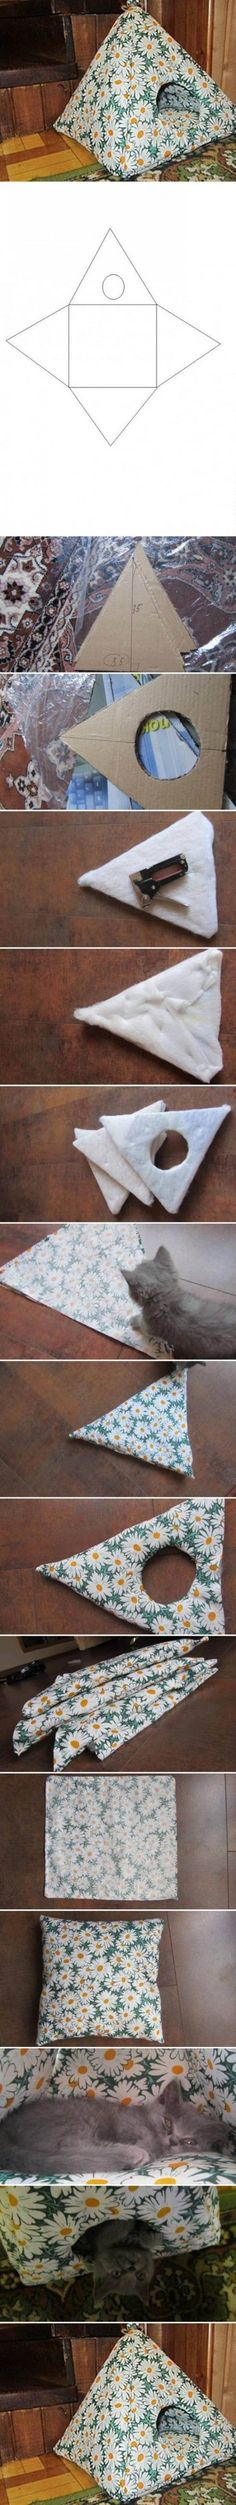 DIY tent. For large animals or can hang in cage for small animals.: